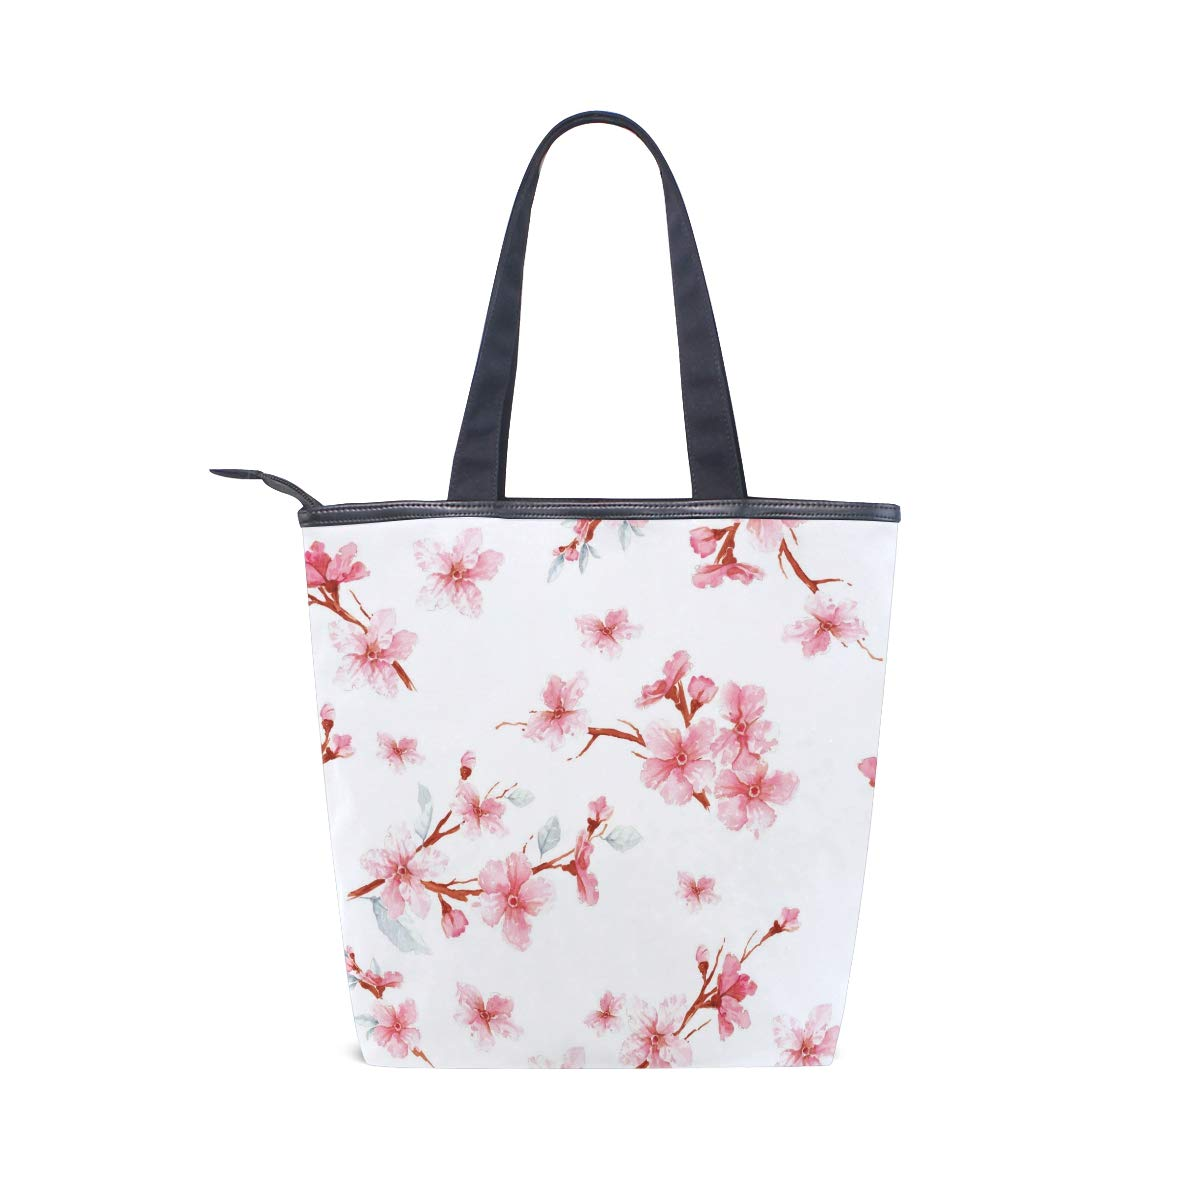 SHANGLONG Fashion Peach Blossom Printed Canvas Tote Bags Women Casual Large Capacity Bags Daily Use